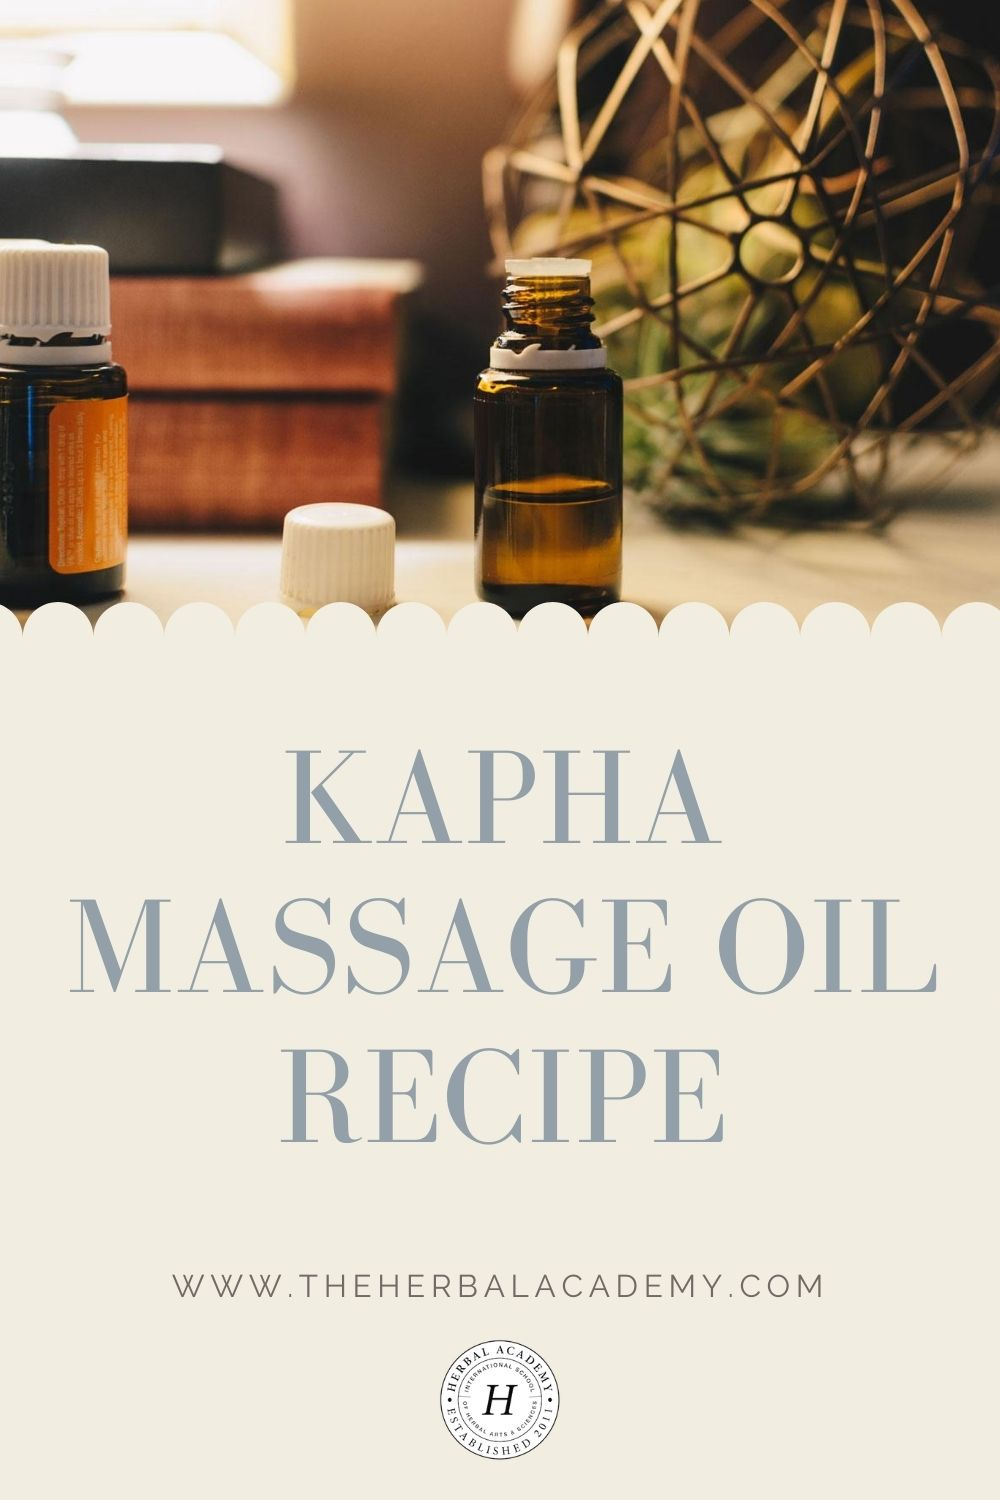 Kapha Massage Oil Recipe (Late Winter and Early Spring) | Herbal Academy | This kapha massage oil recipe features herbs and spices with a warming and invigorating energy, which makes it great for cold weather.